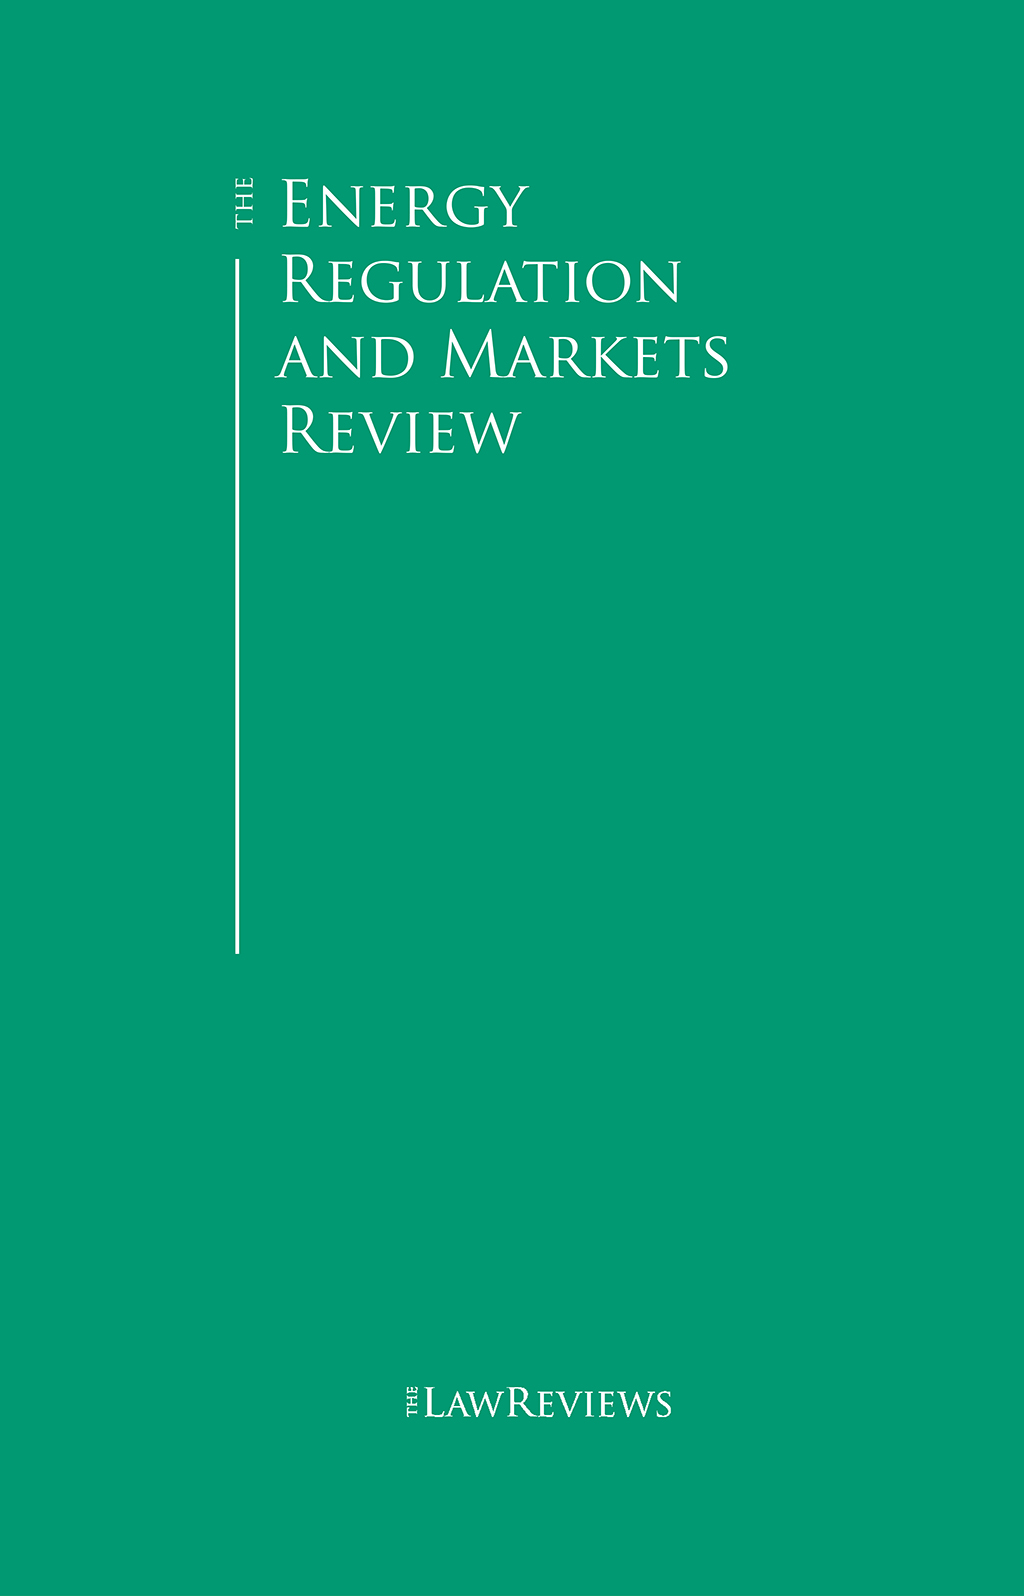 The Energy Regulation and Markets Review